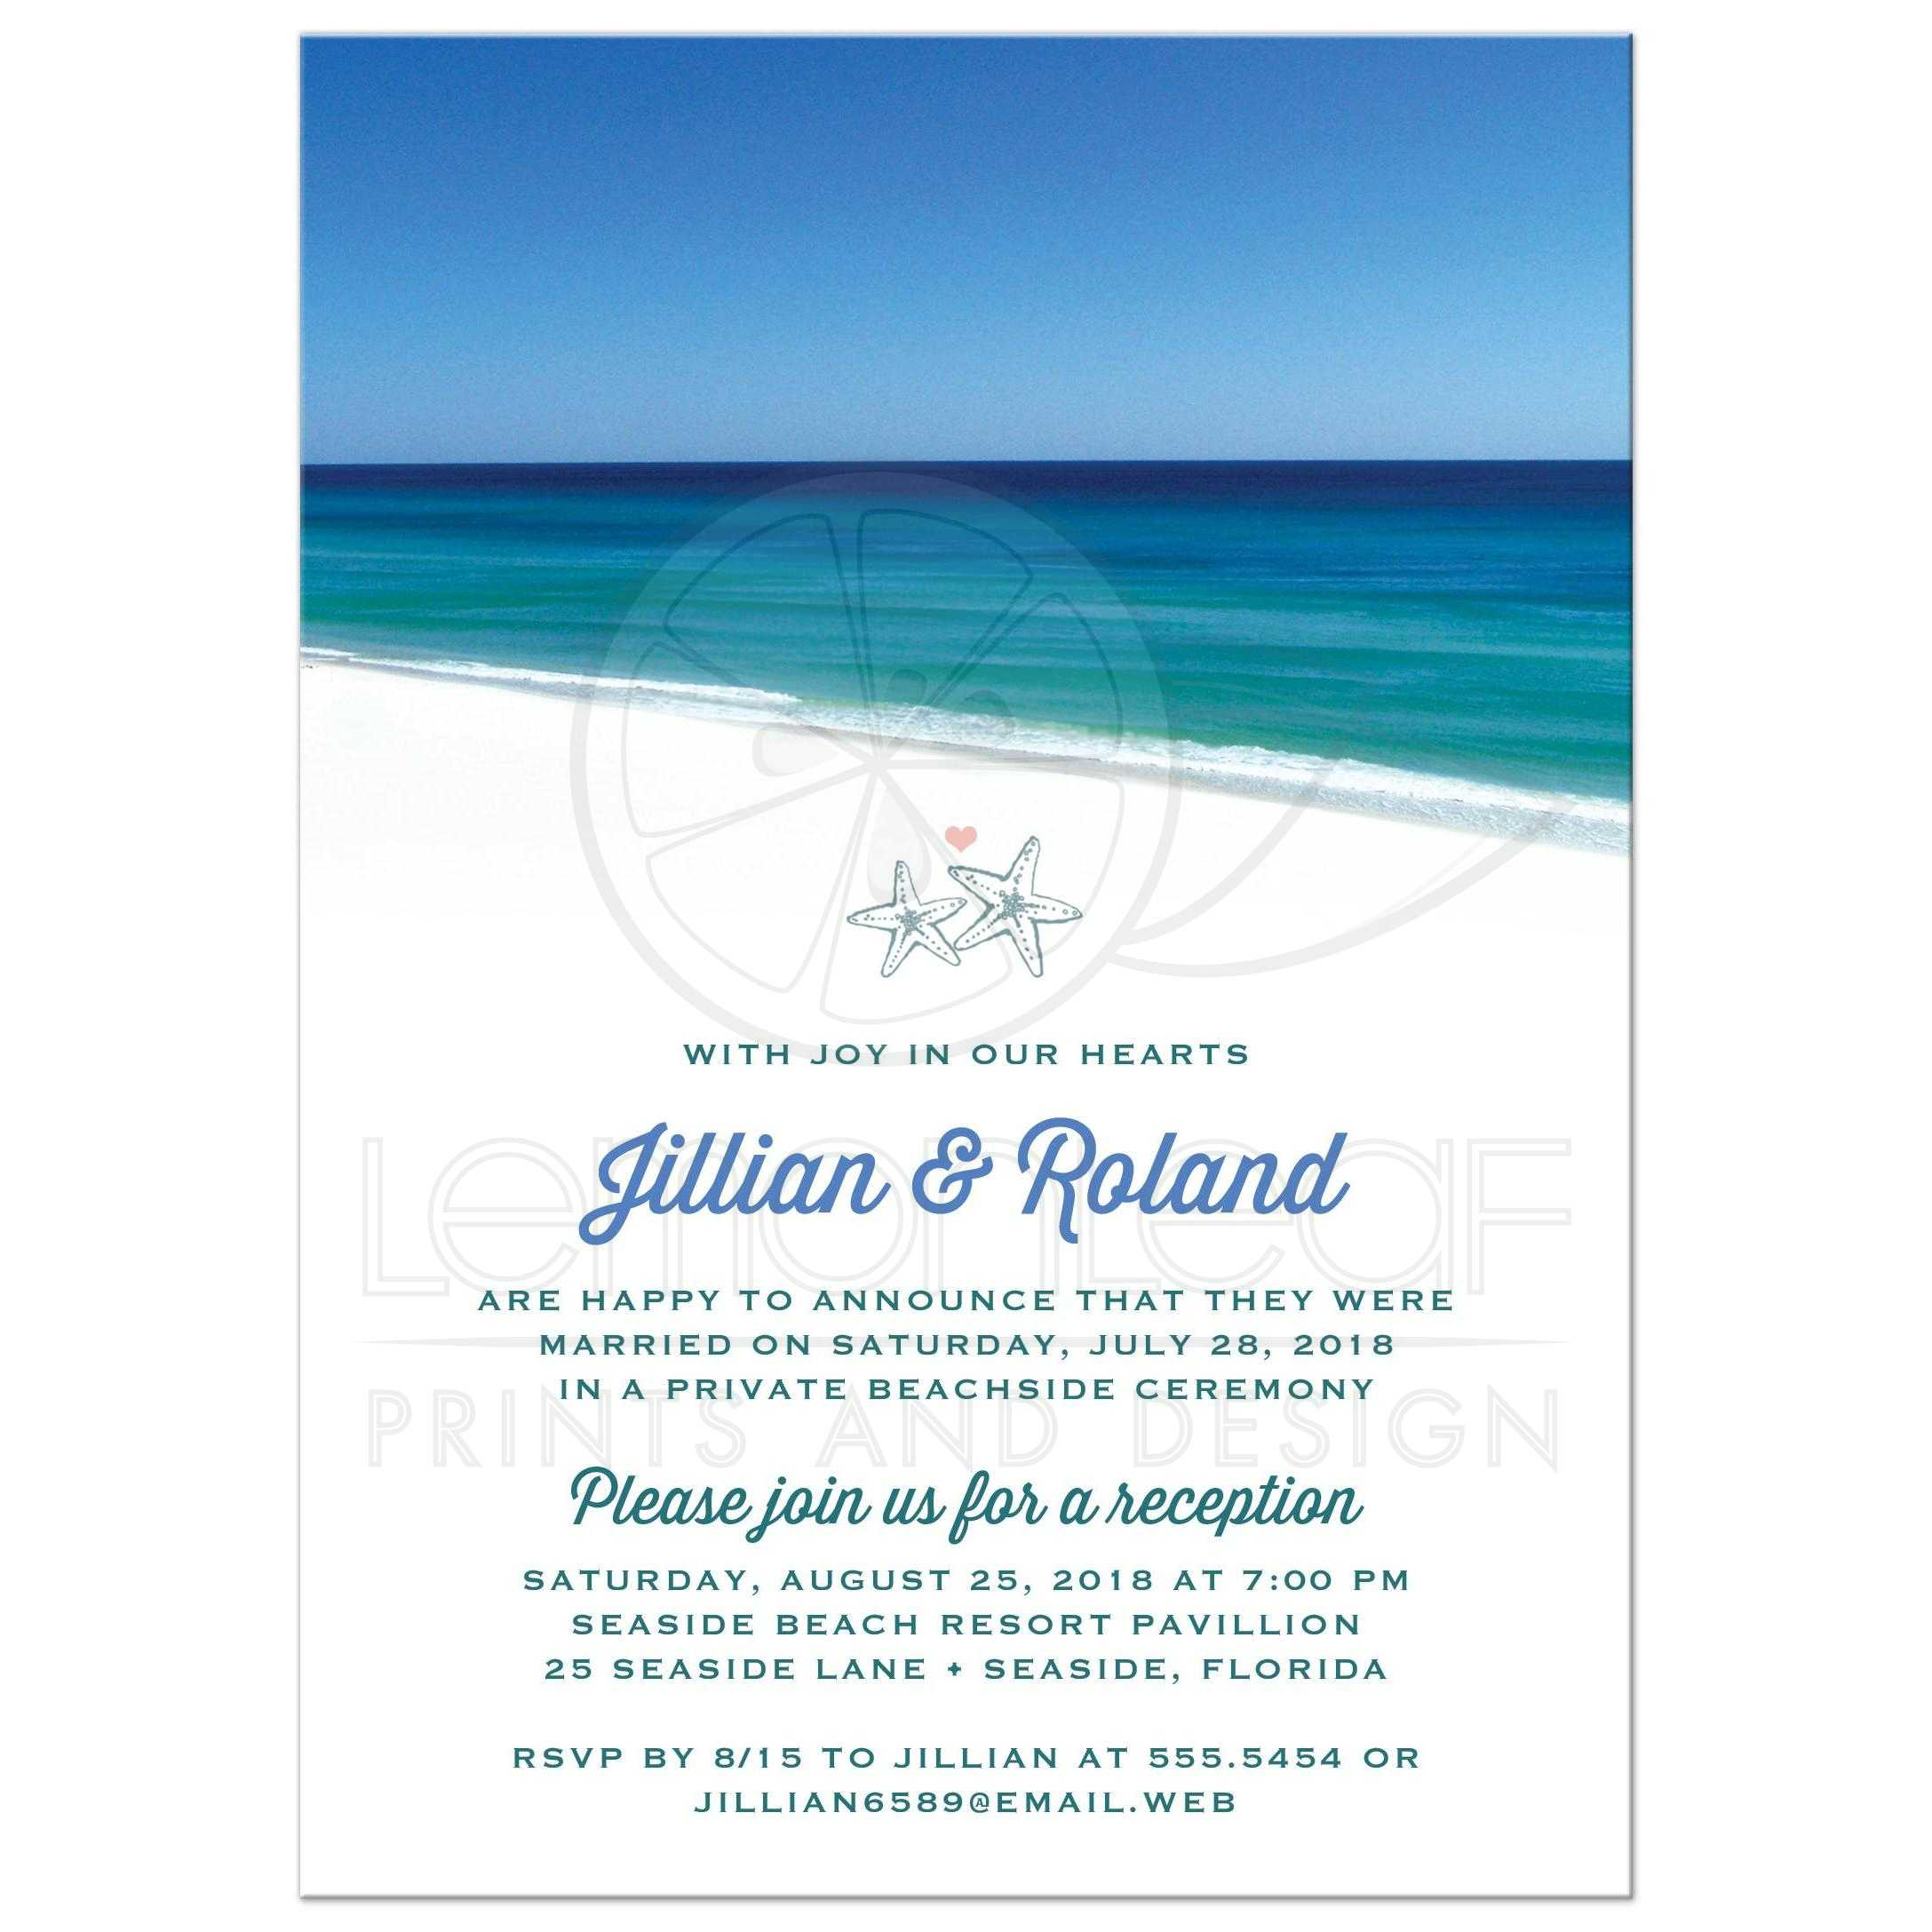 Wedding Invitation Etiquette For Reception Only - Wedding ...